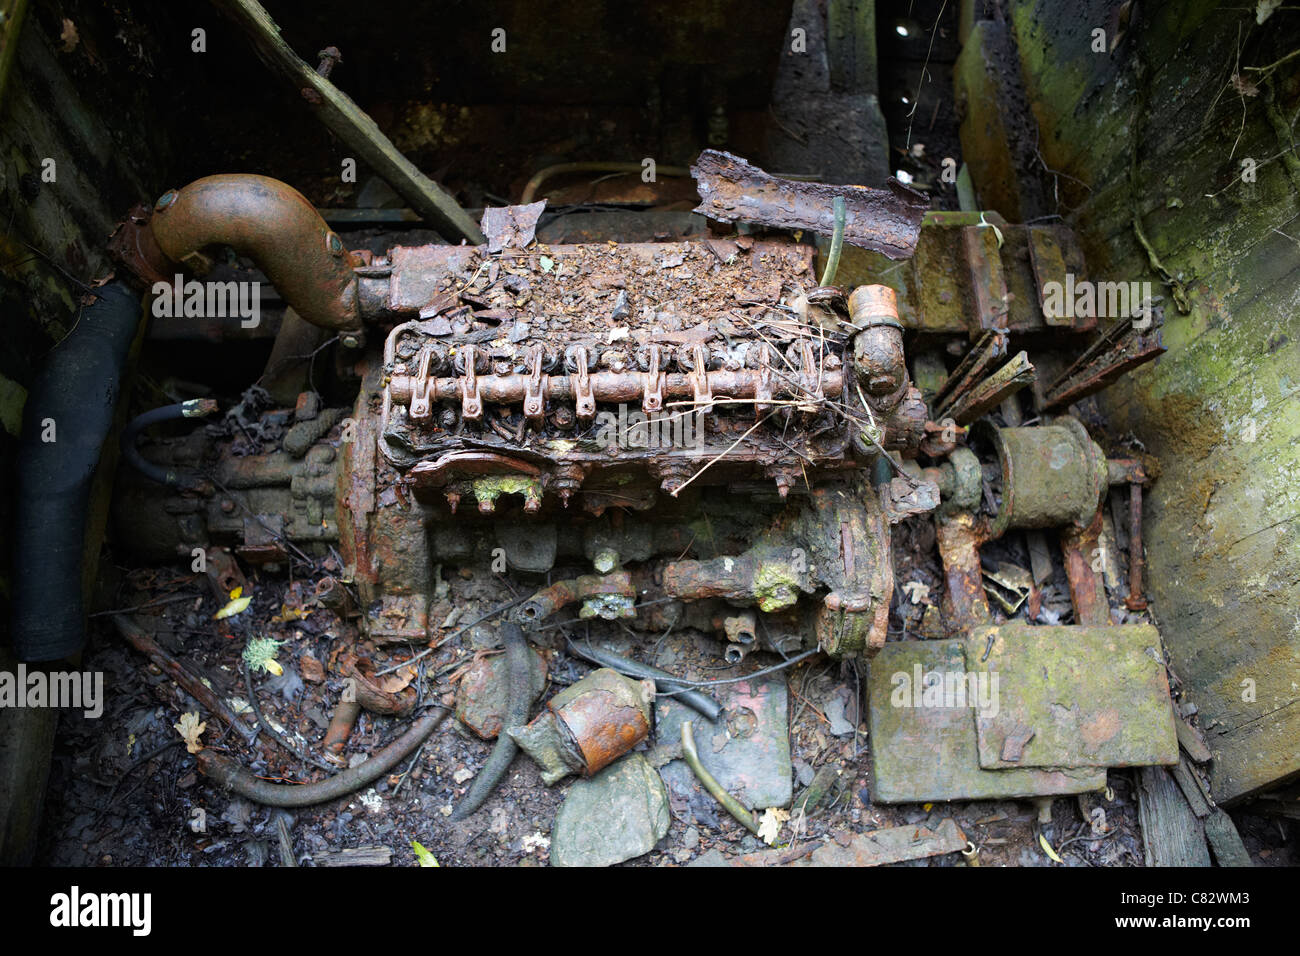 Rusted boat engine - Stock Image